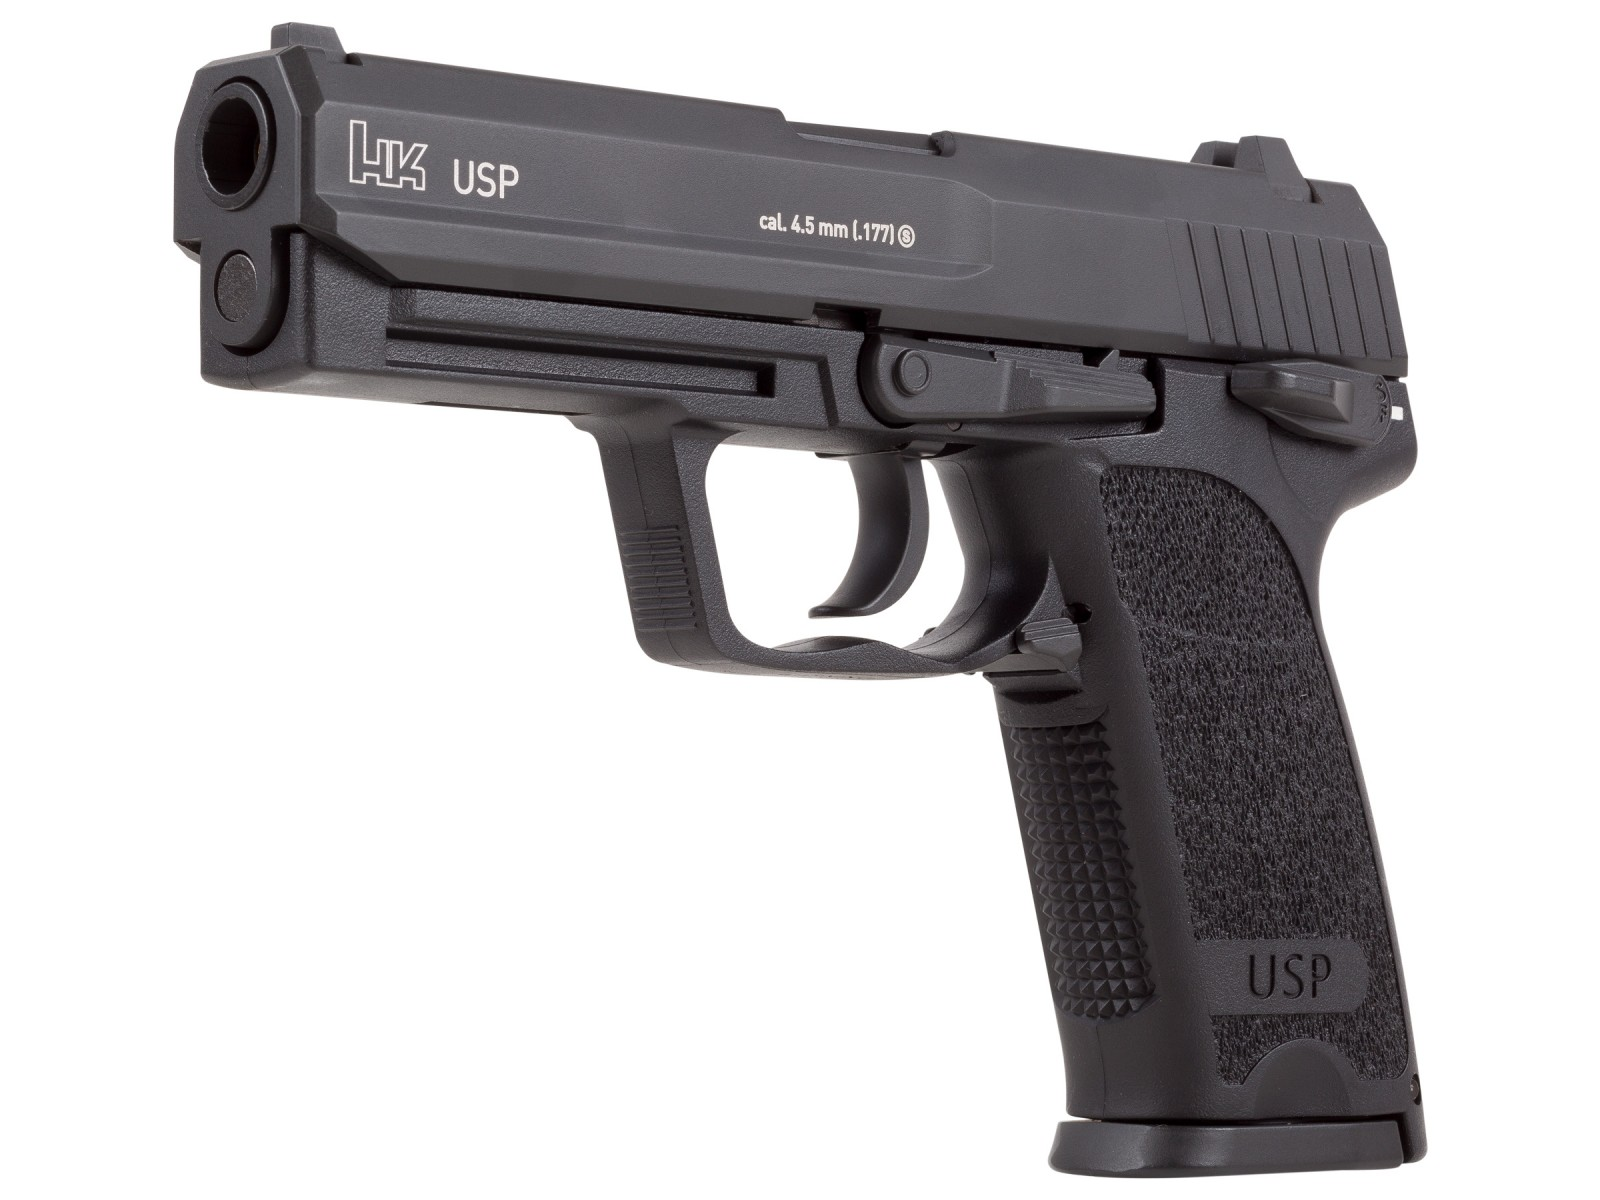 HK USP Blowback .177 Pistol